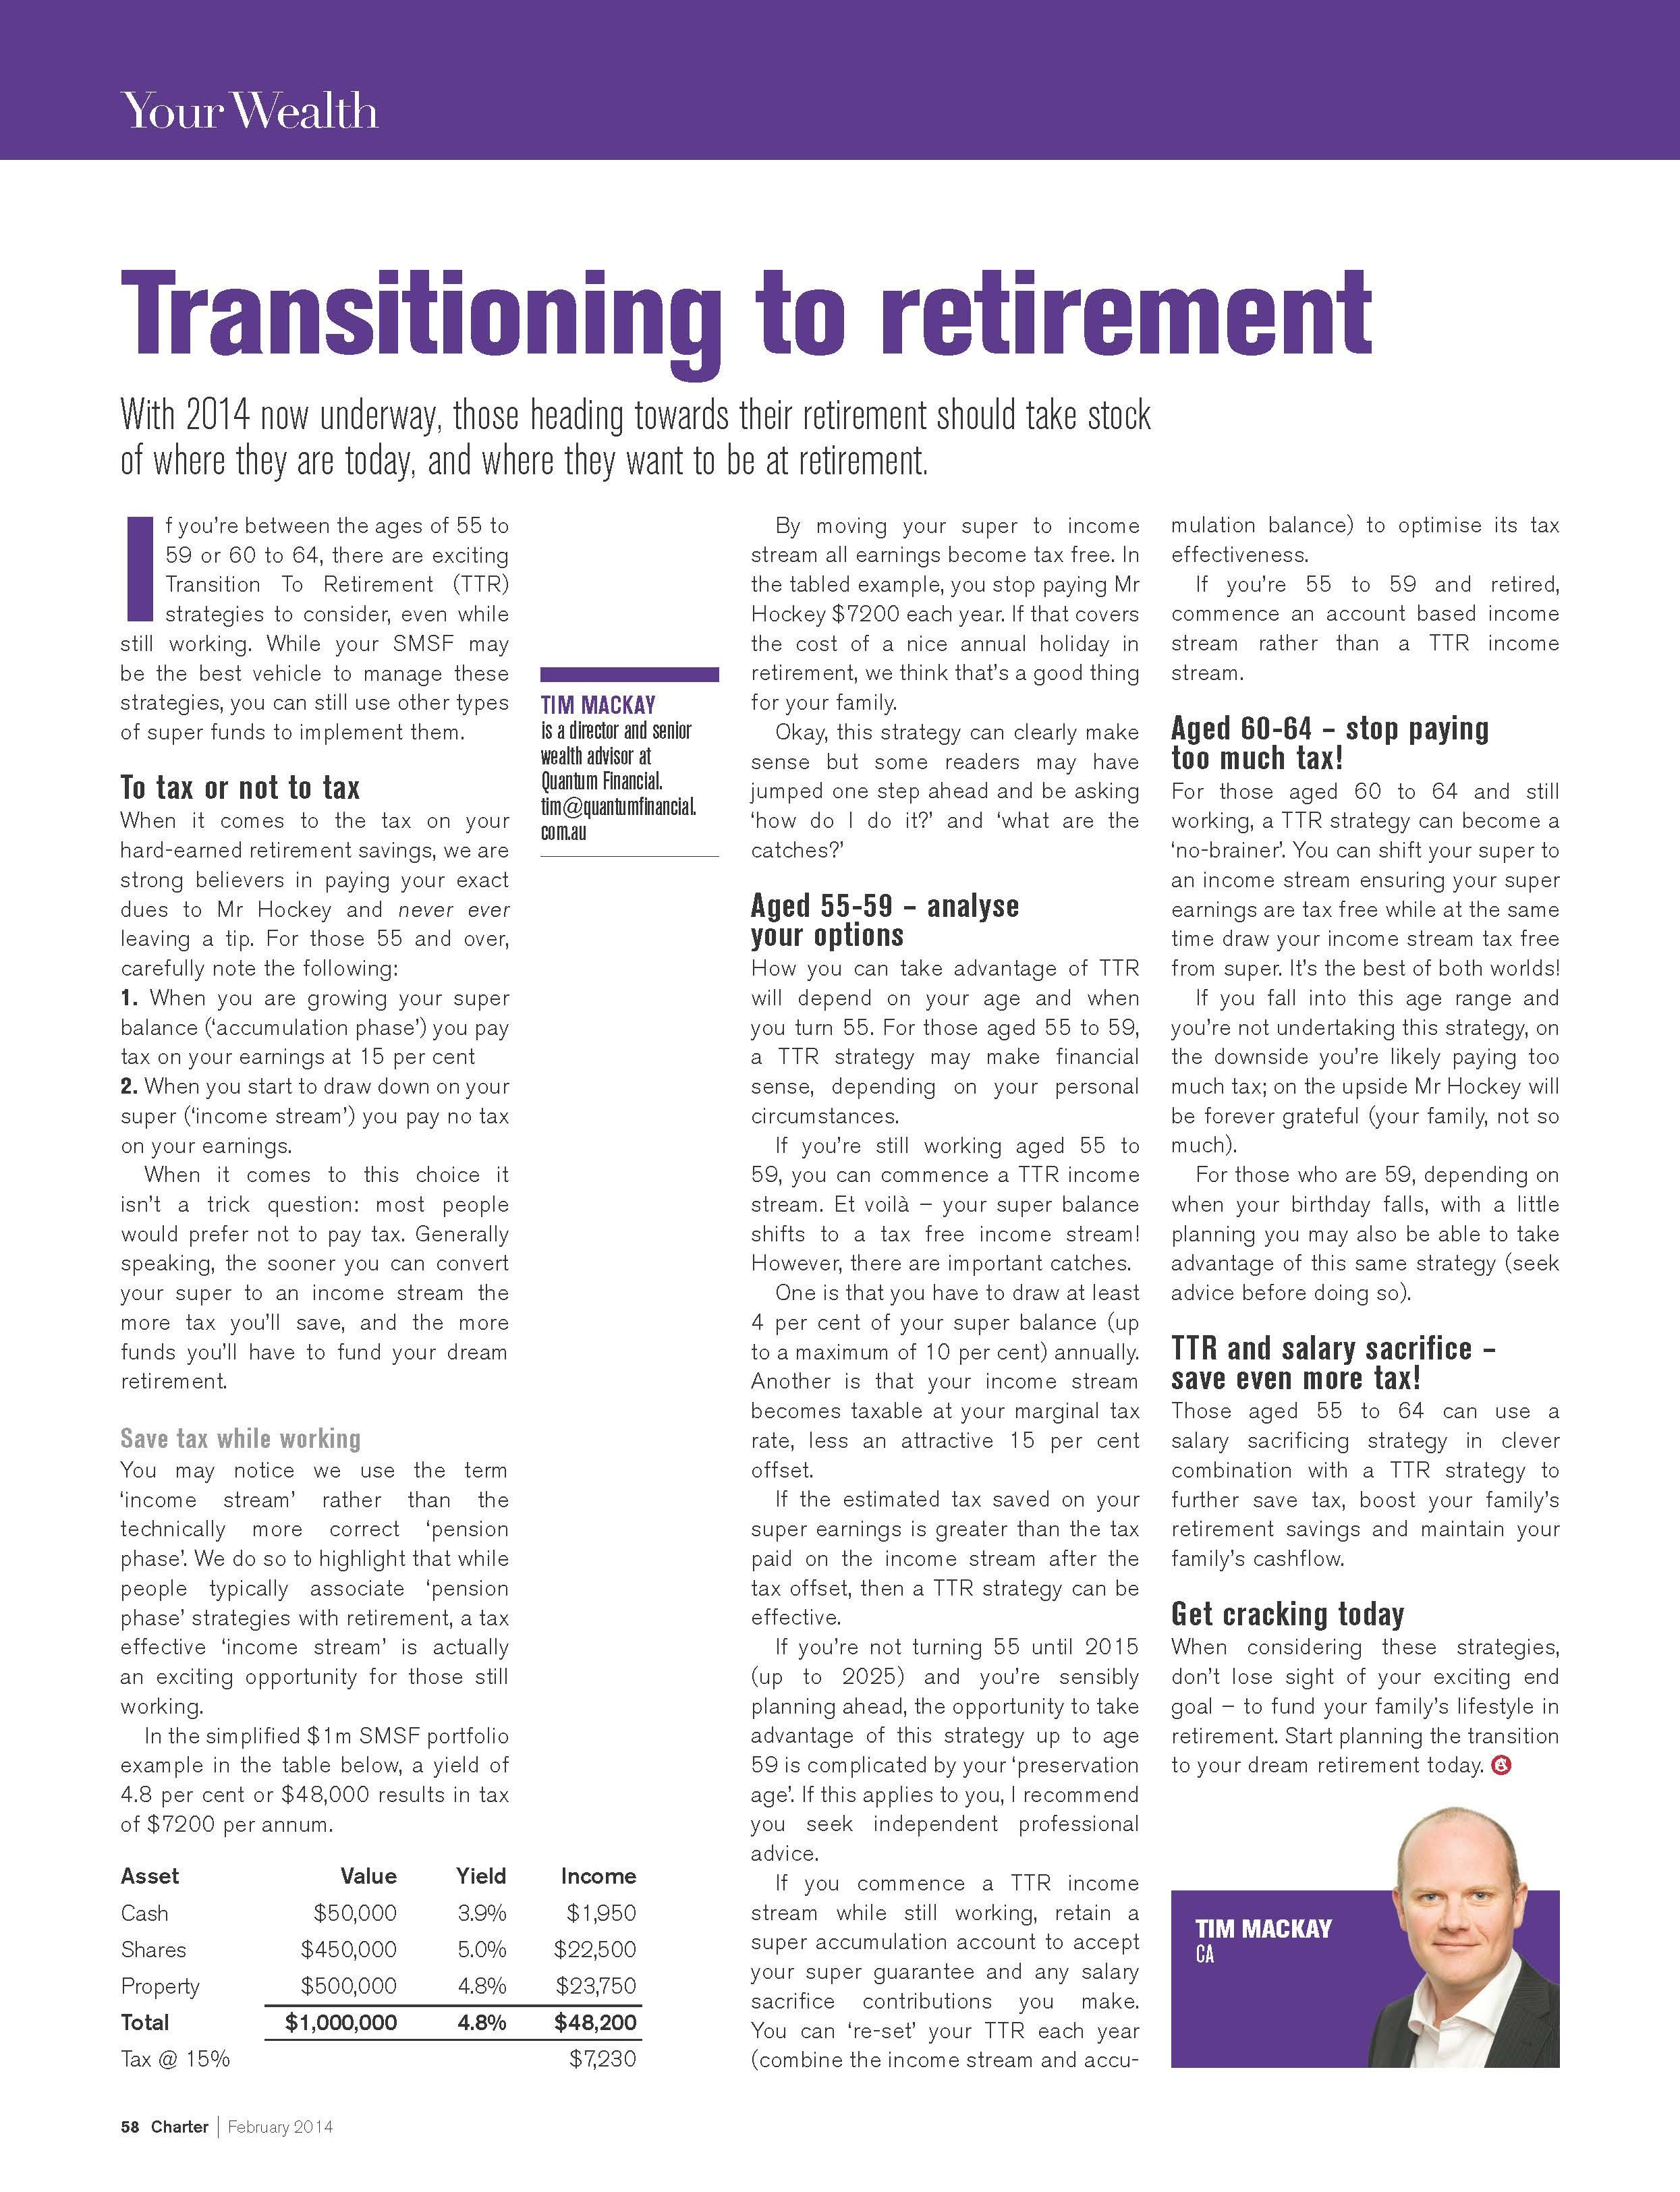 Do You Want To Successfully Transition To Your Dream Retirement